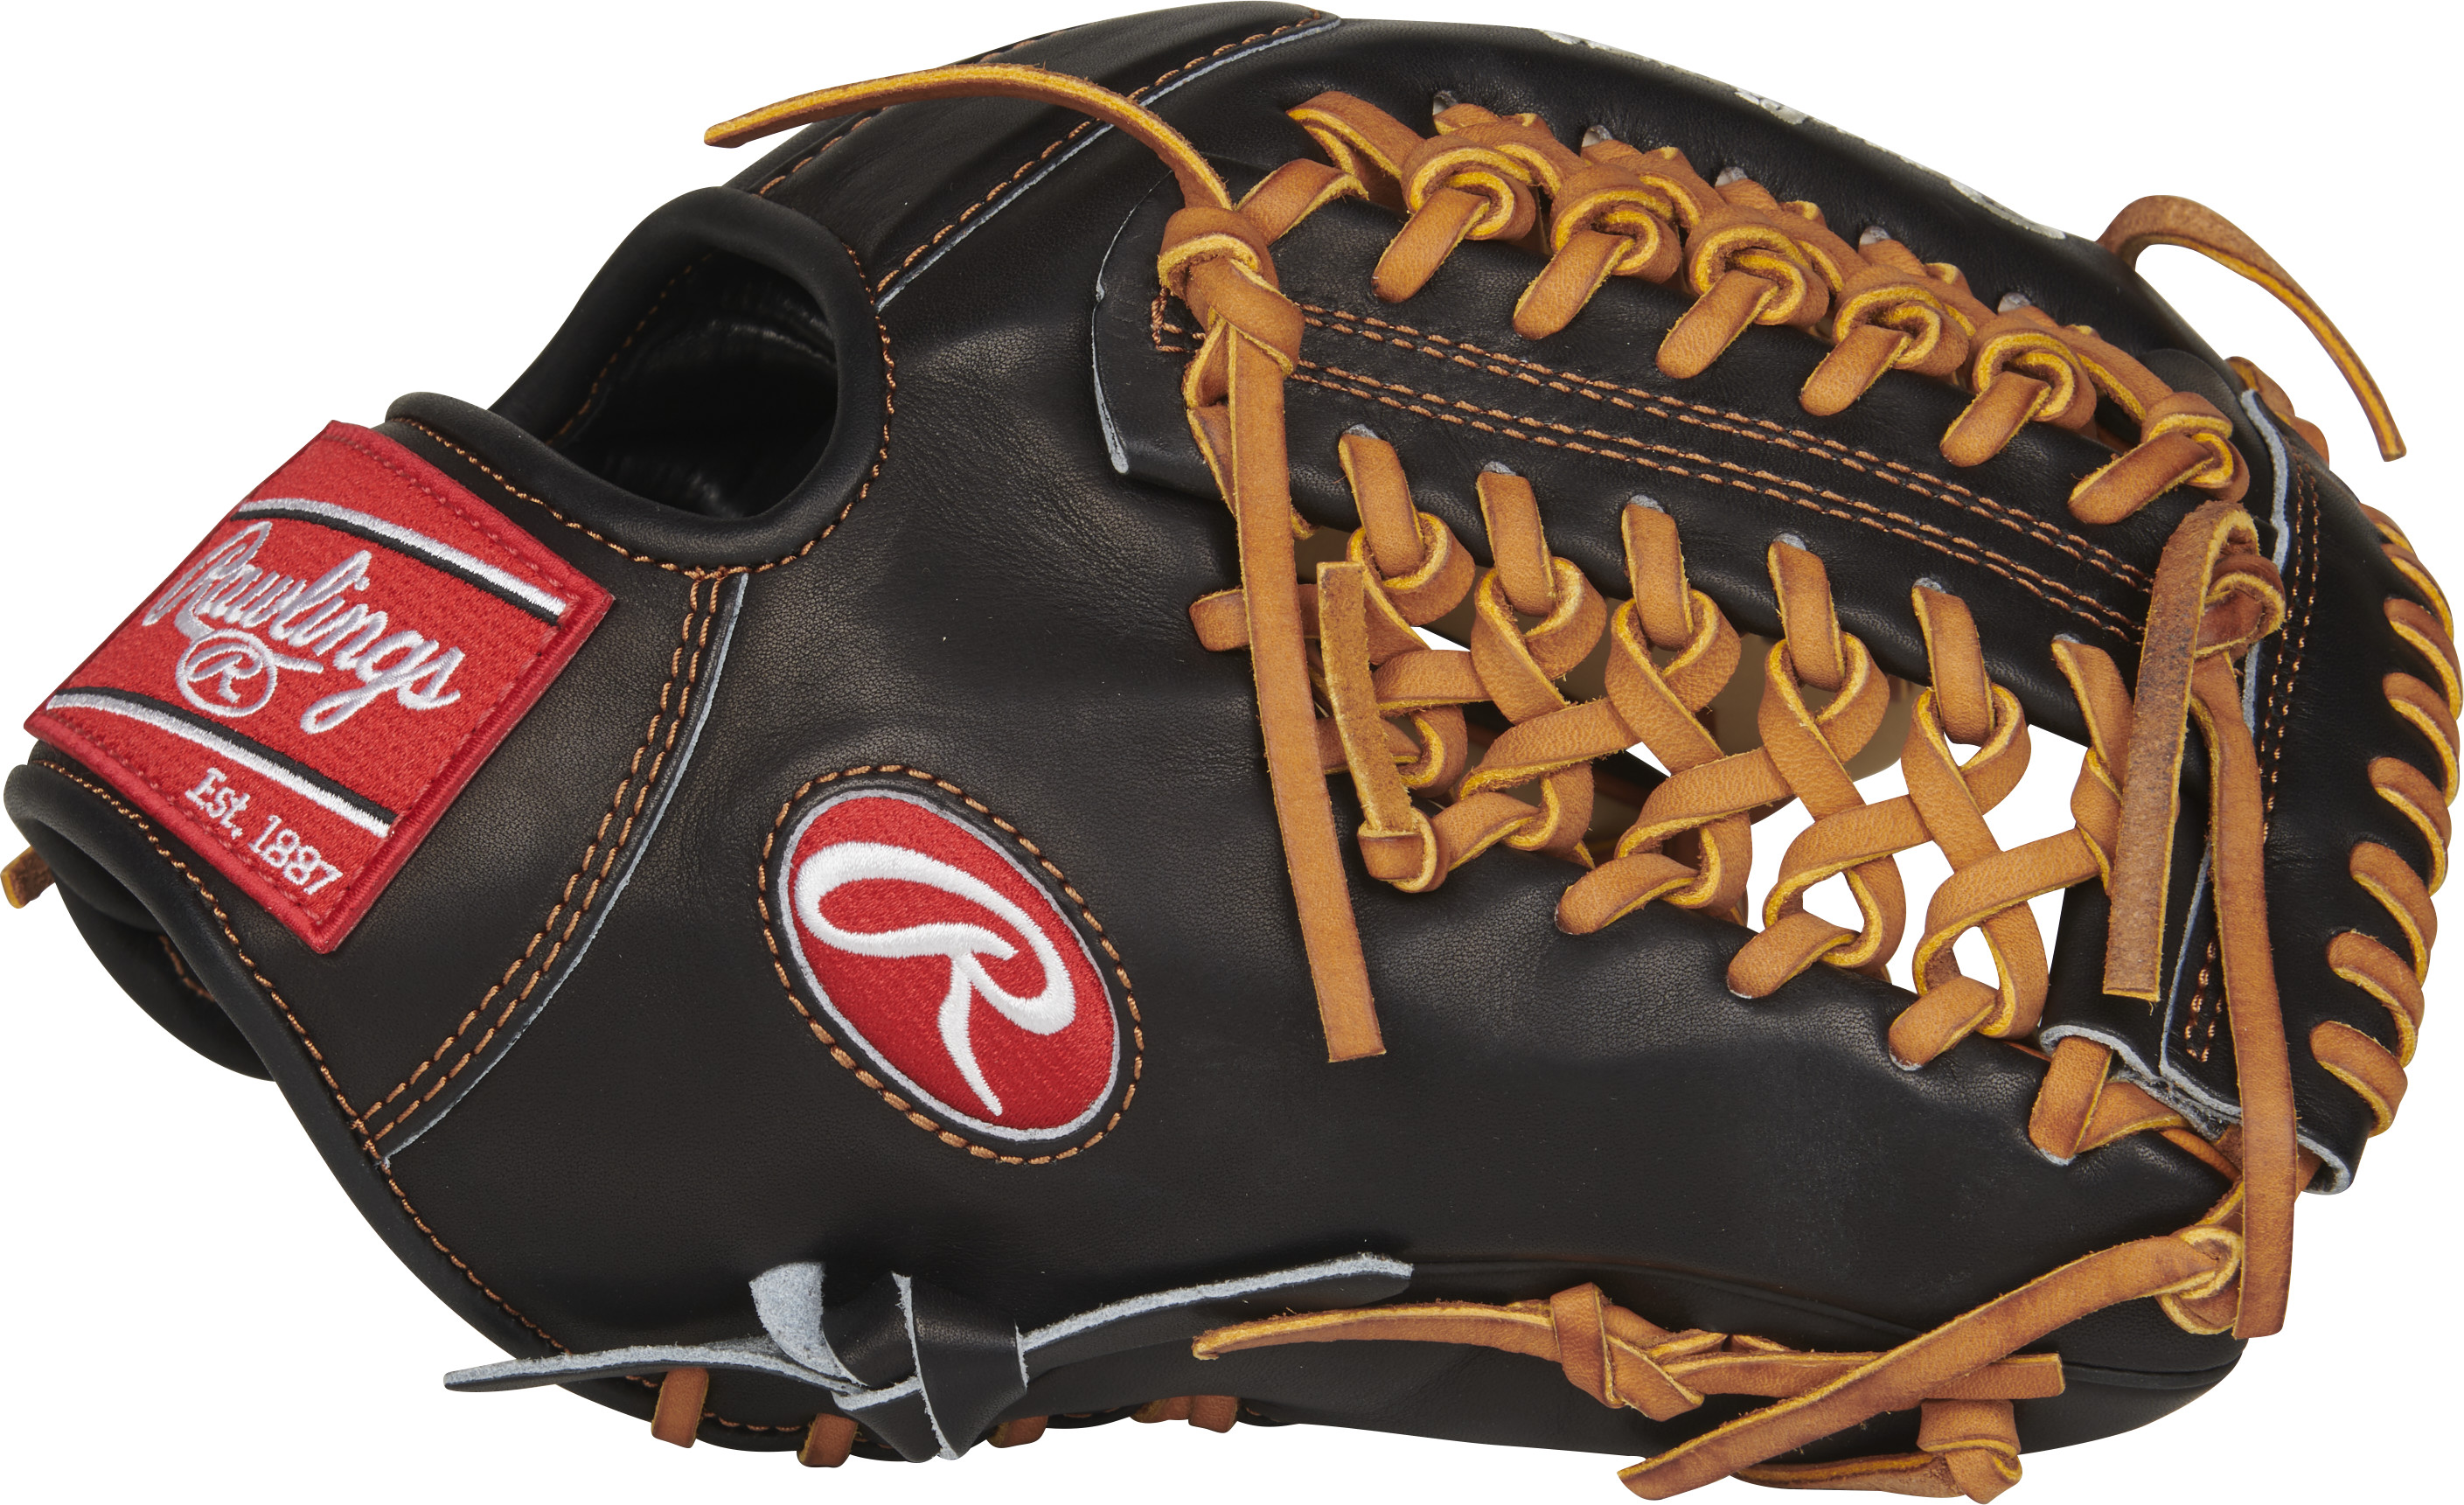 http://www.bestbatdeals.com/images/gloves/rawlings/PROS205-4CBT-3.jpg